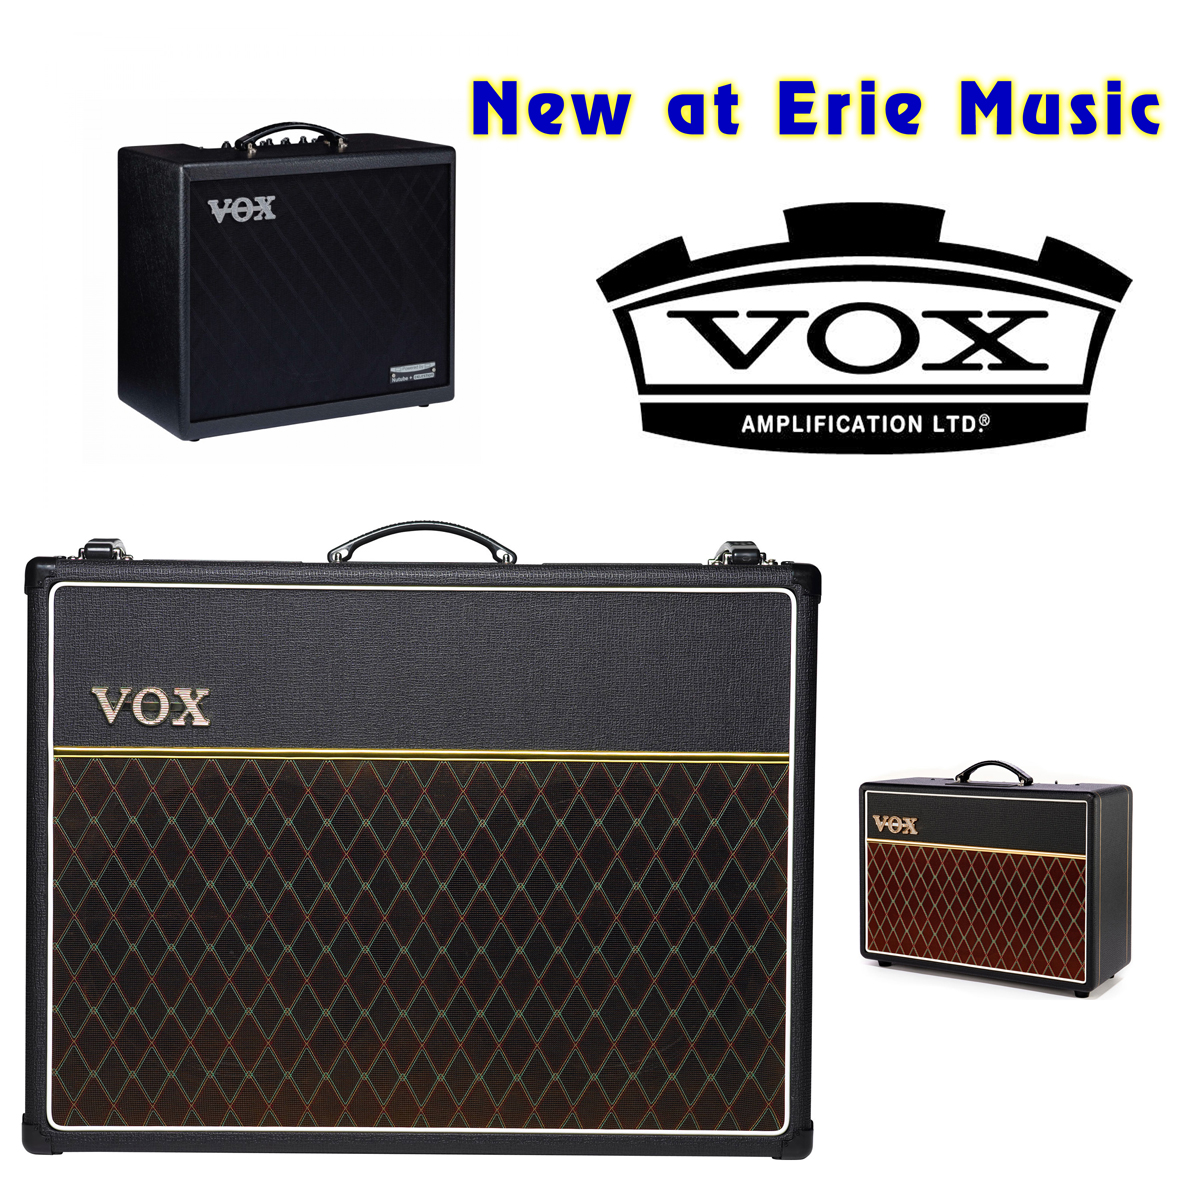 Vox Amps now at Erie Music!